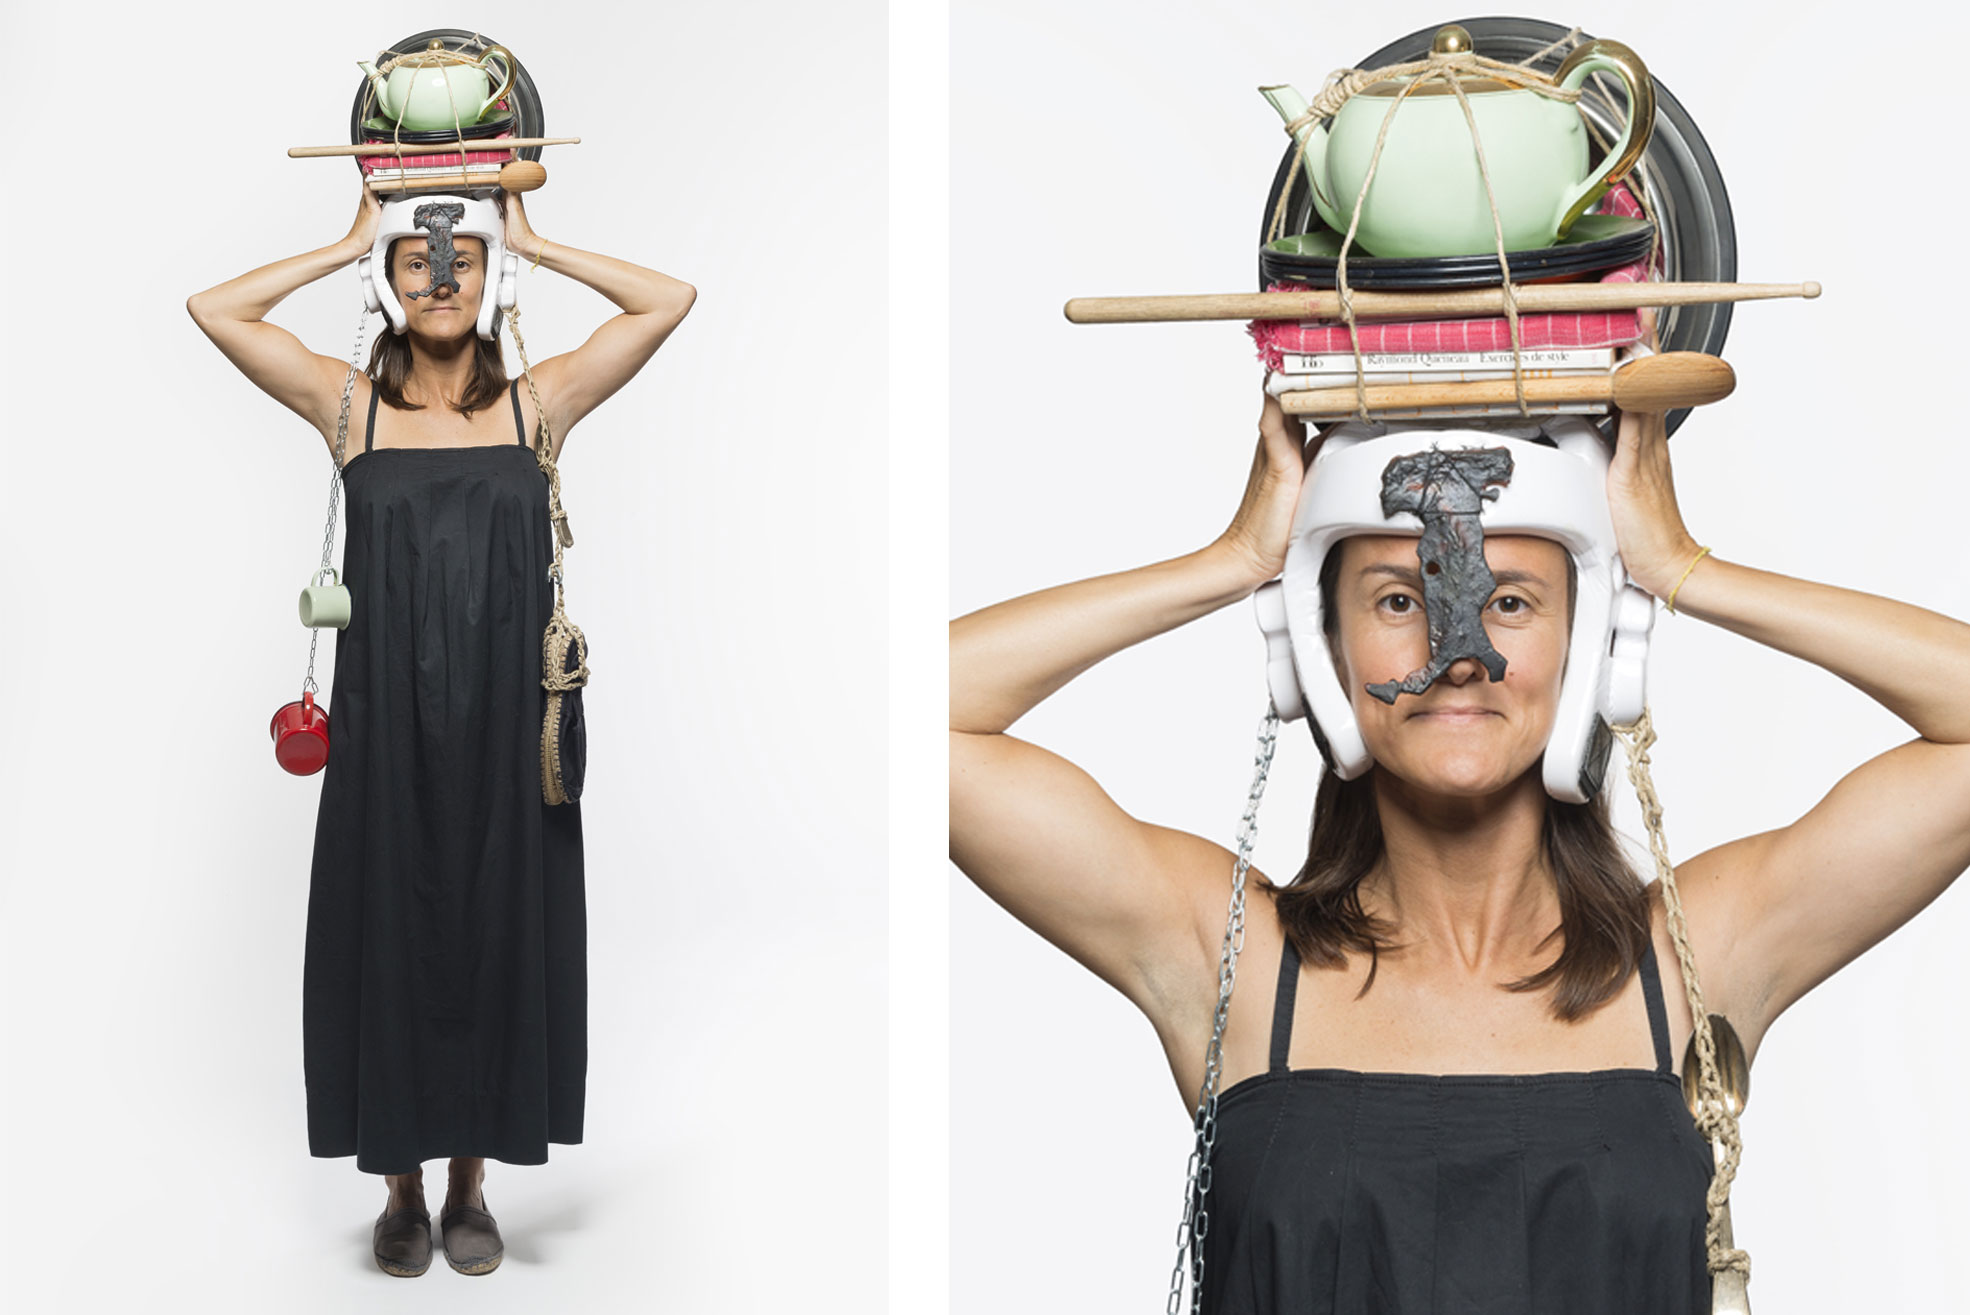 Photo of a woman with objects on her heads the picture is part of Wearable Homes a design project by Denise Bonapace